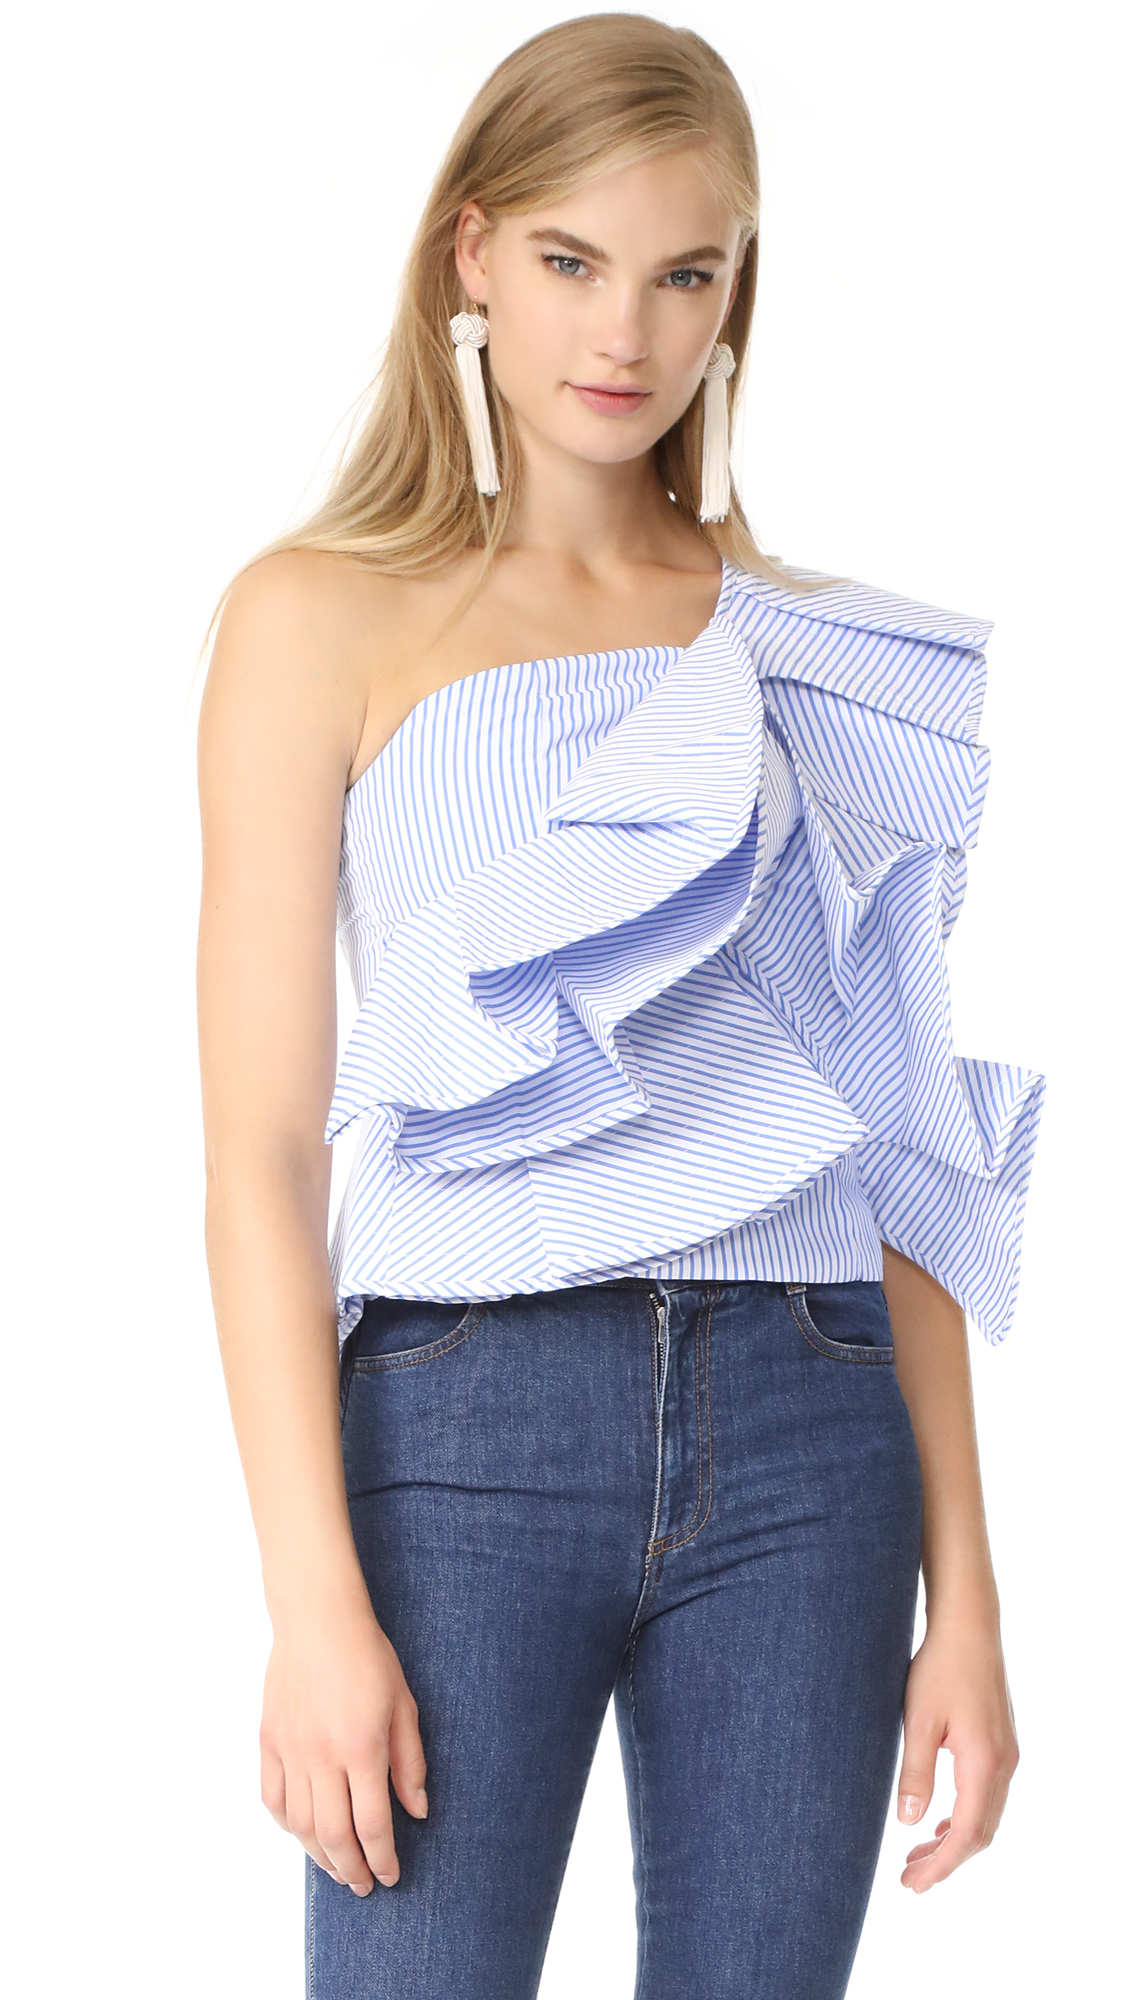 STYLEKEEPERS Chic in the City Top - Pinstriped Blue